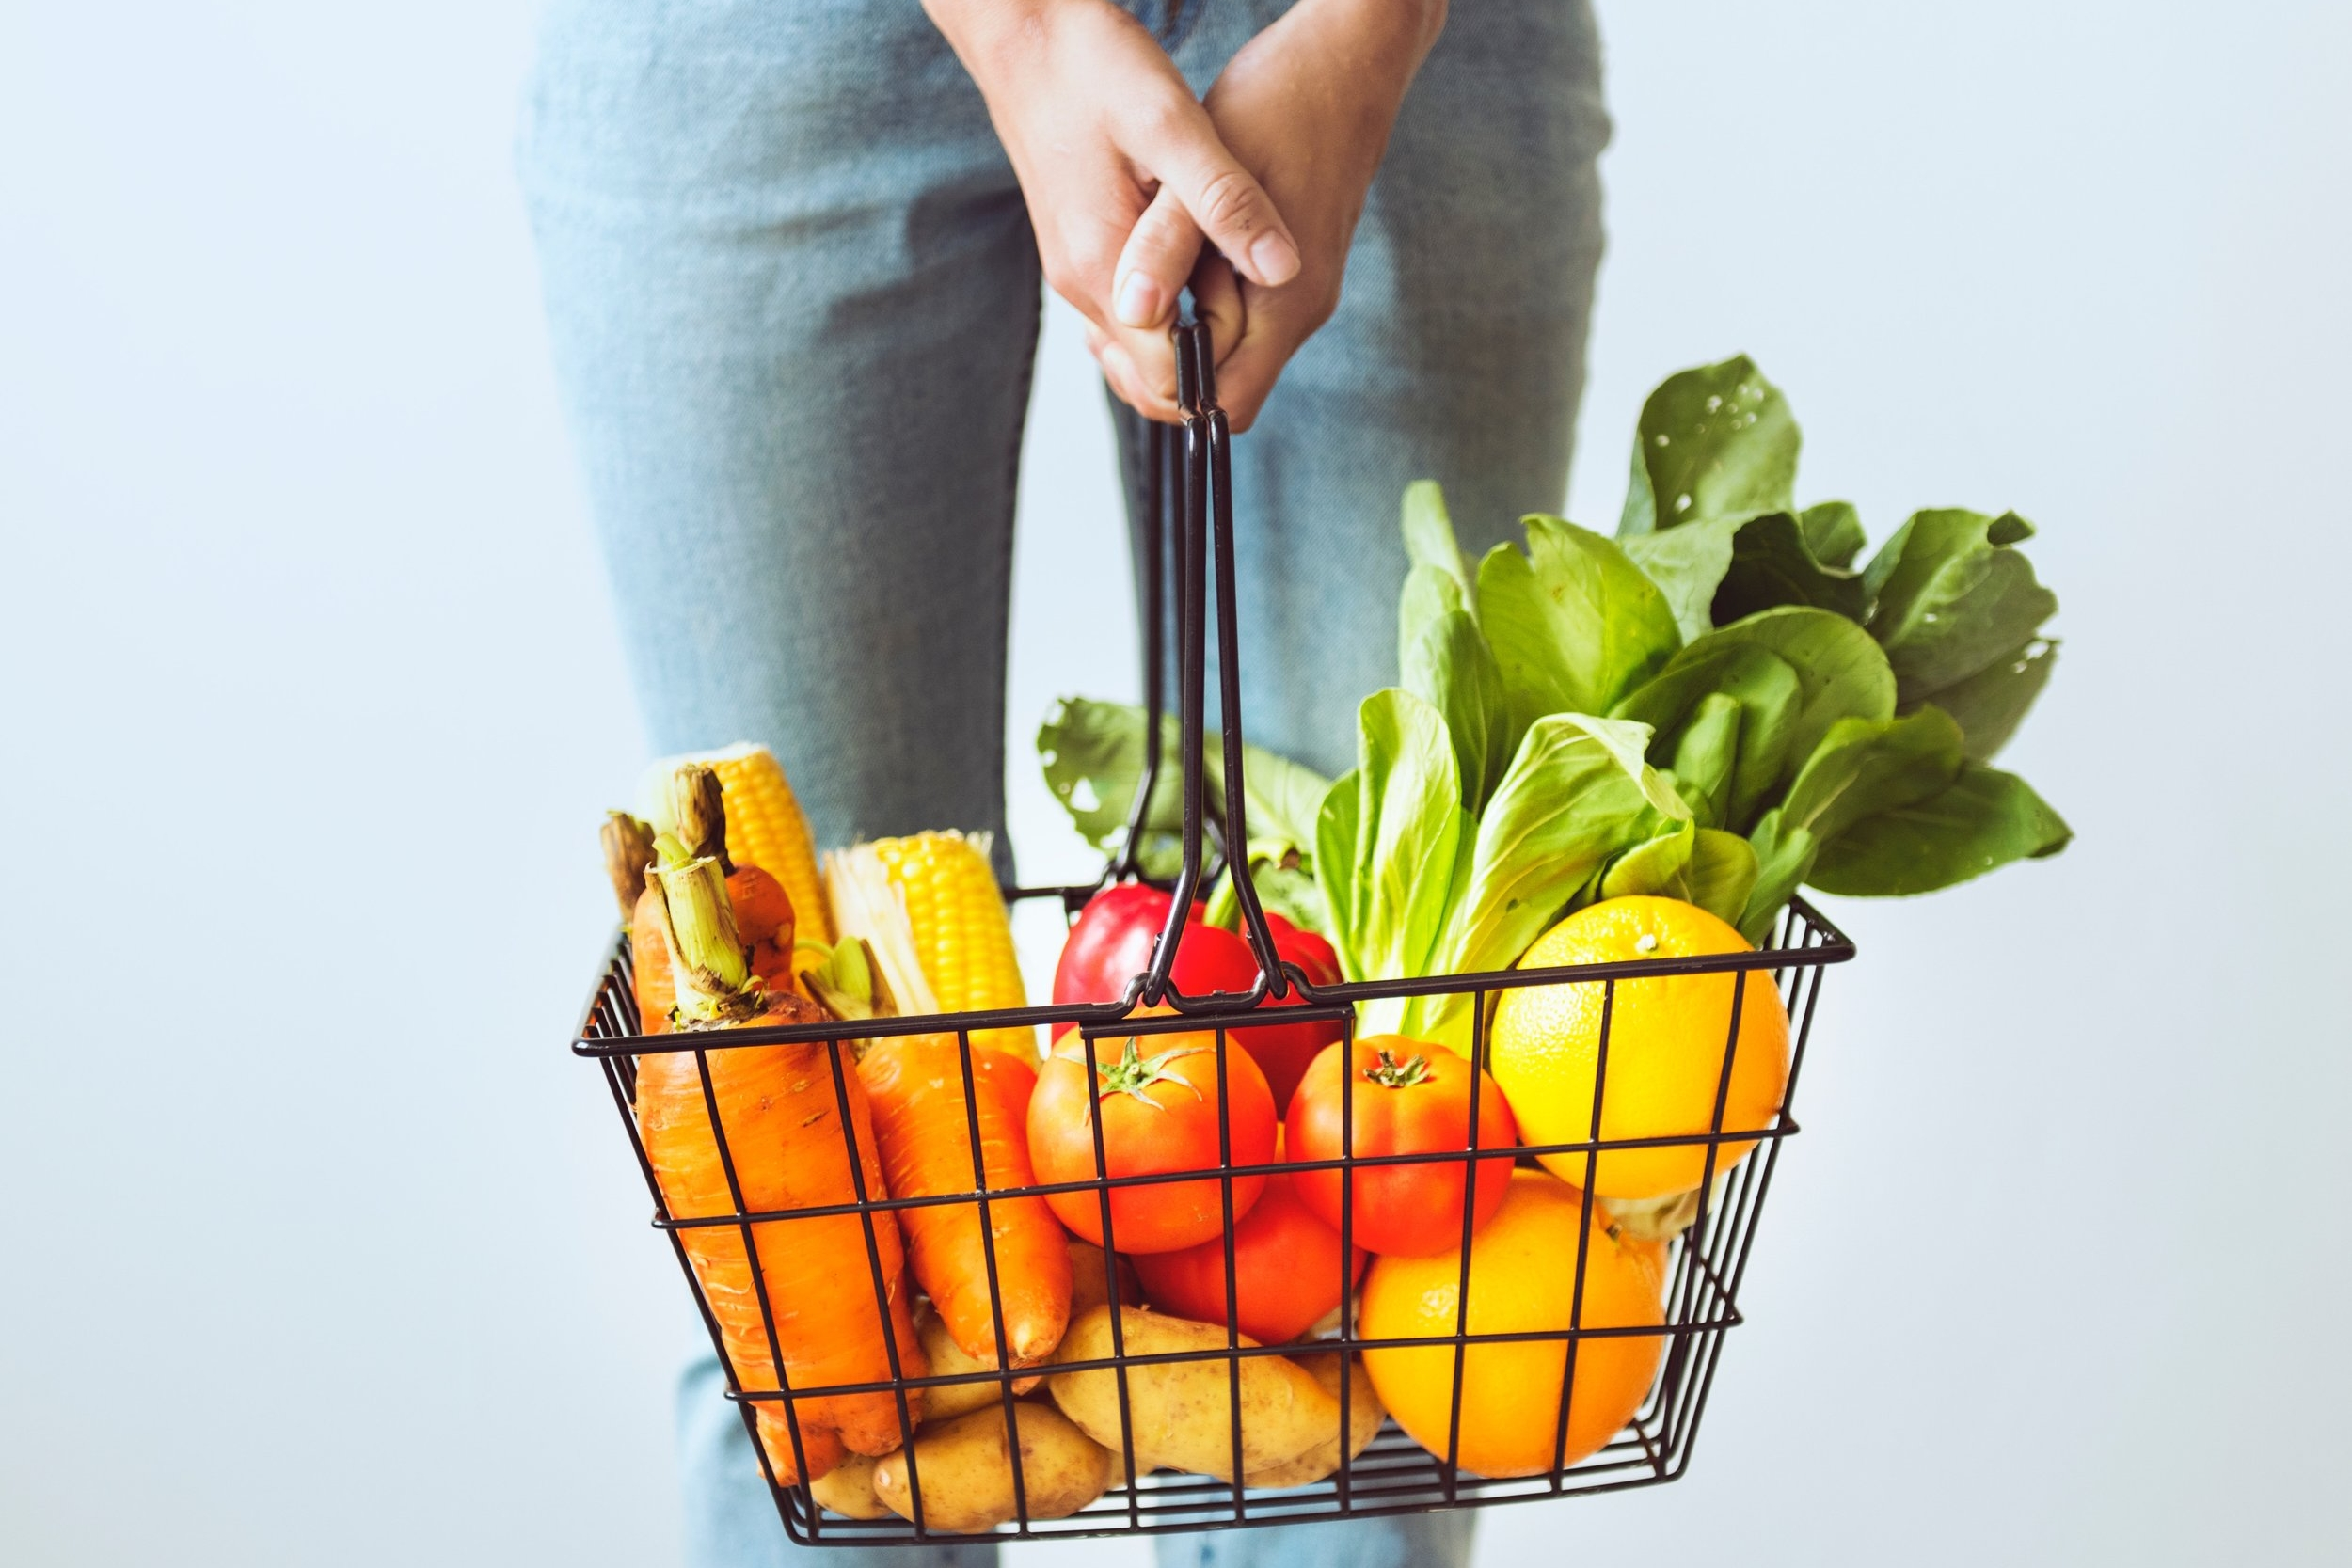 Grocery Store tours - Like doing the shopping and meal prep yourself but need some guidance on how to shop efficiently and more healthfully? This 1-hour tour will help you become a grocery store wiz!